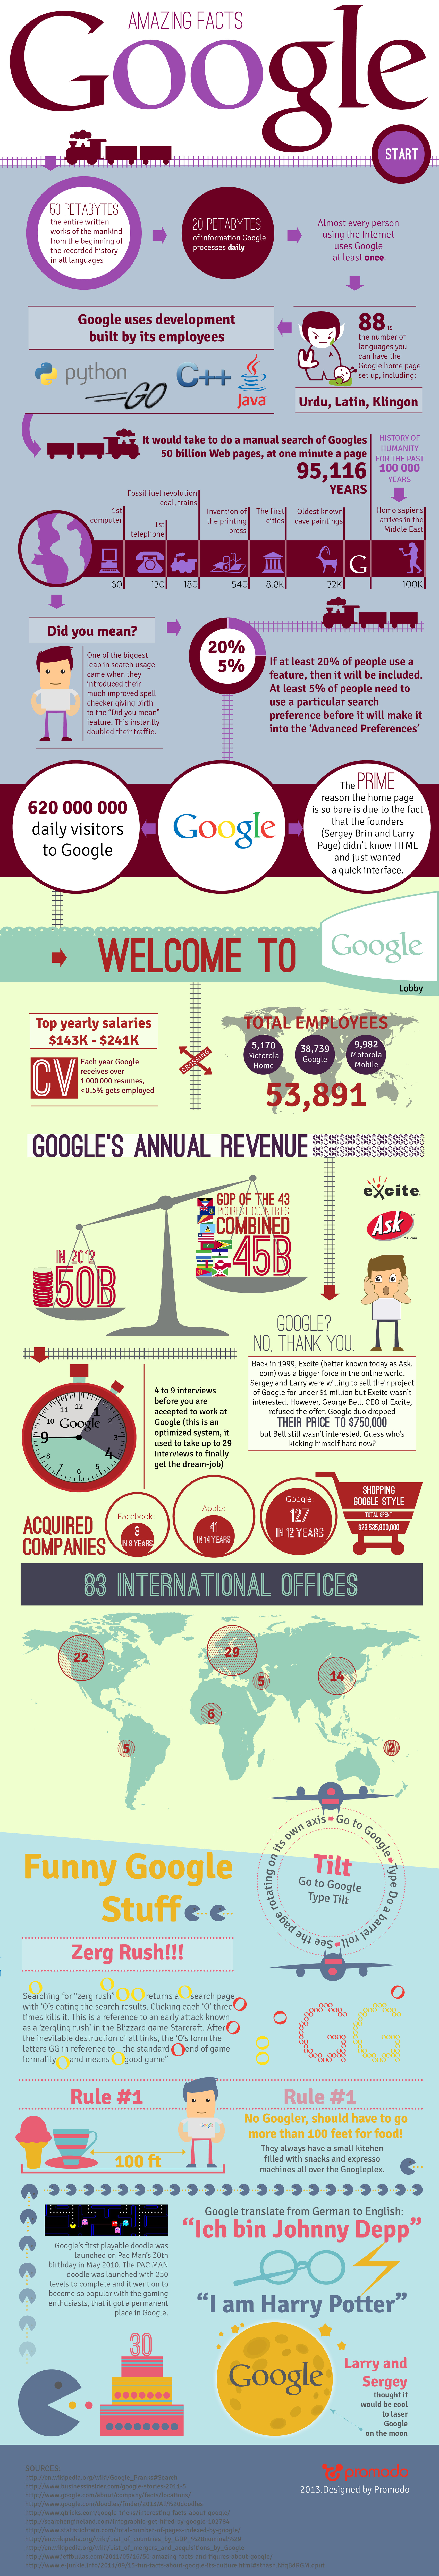 Amazing Google Facts You Most Probably Didn't Know